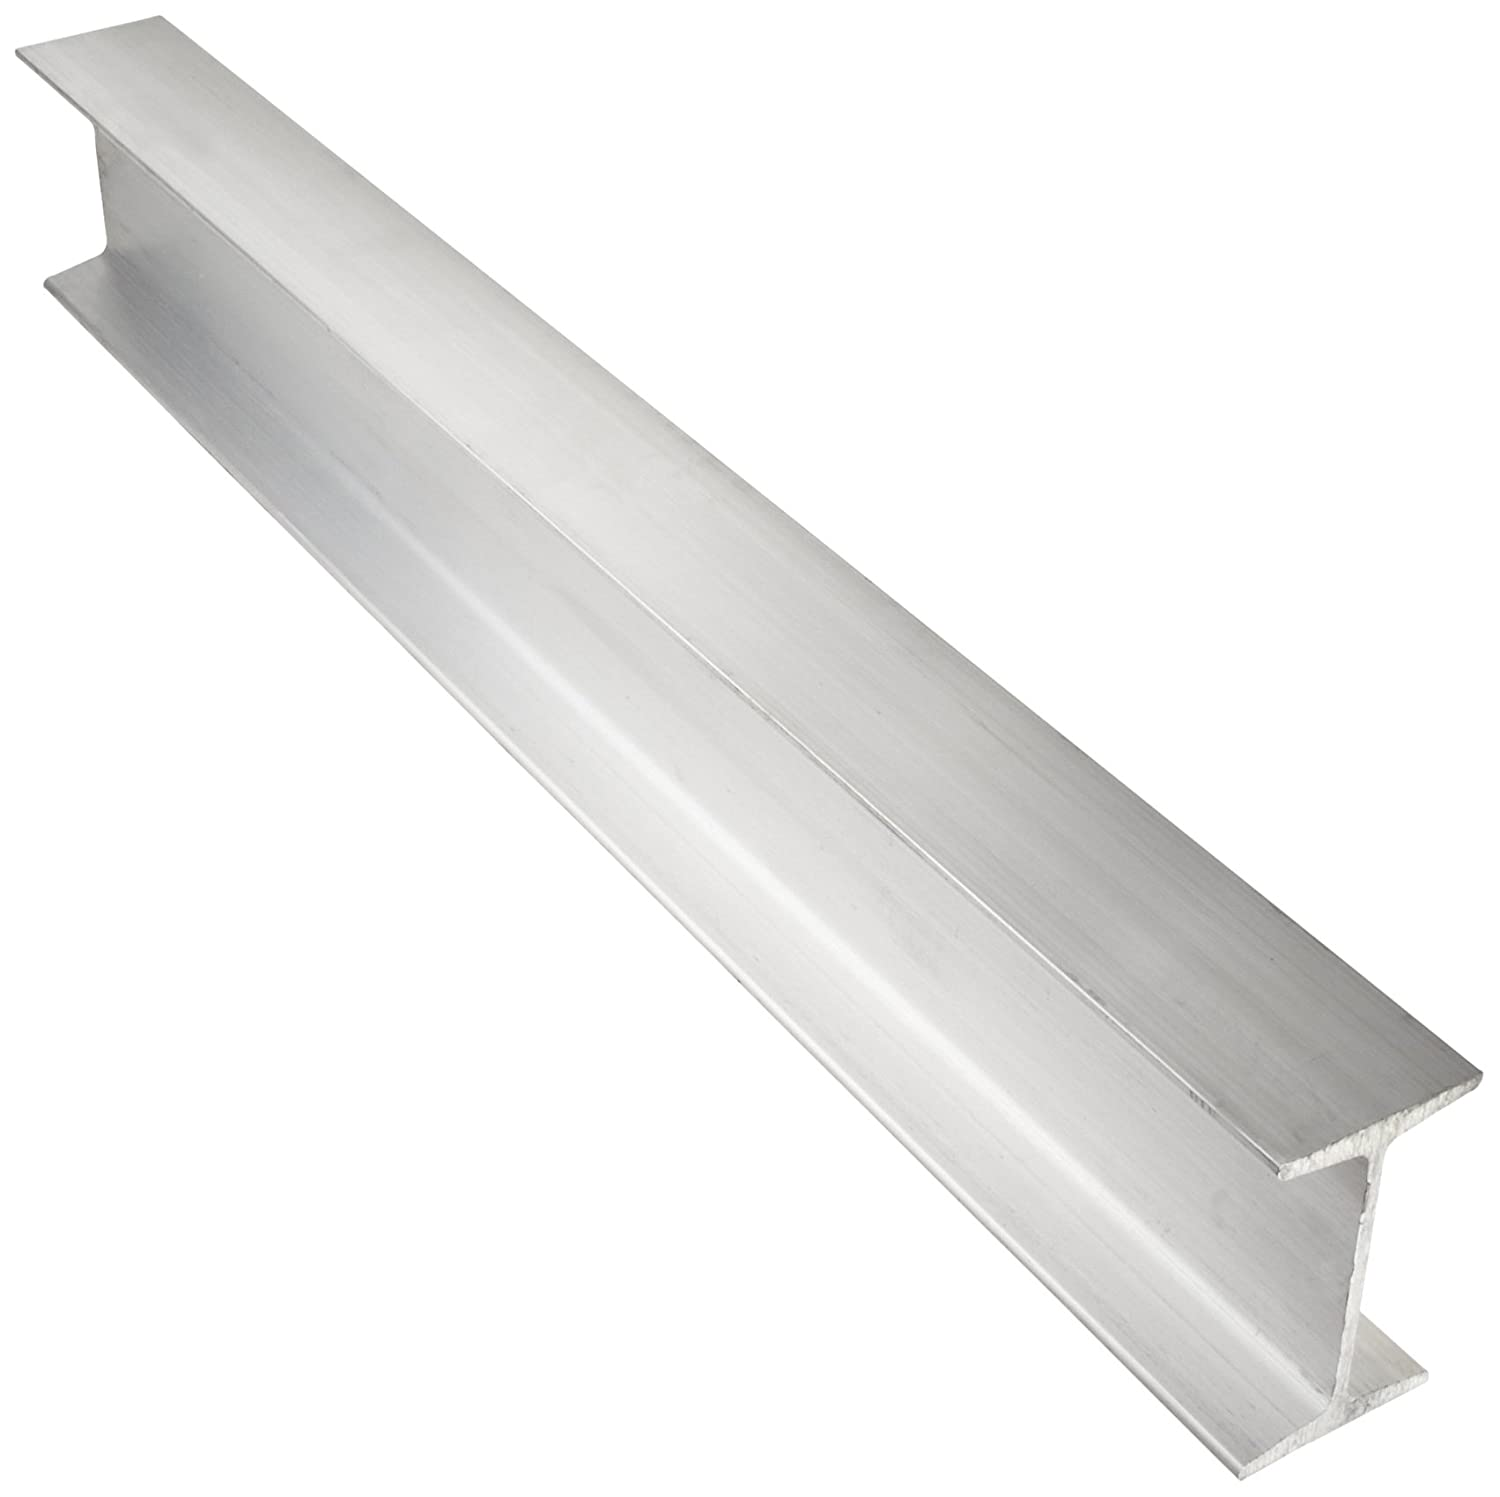 """1.0/"""" Thick x 1.0/"""" Wide x 36/"""" Length 6061 T651 Aluminum Square Bar"""